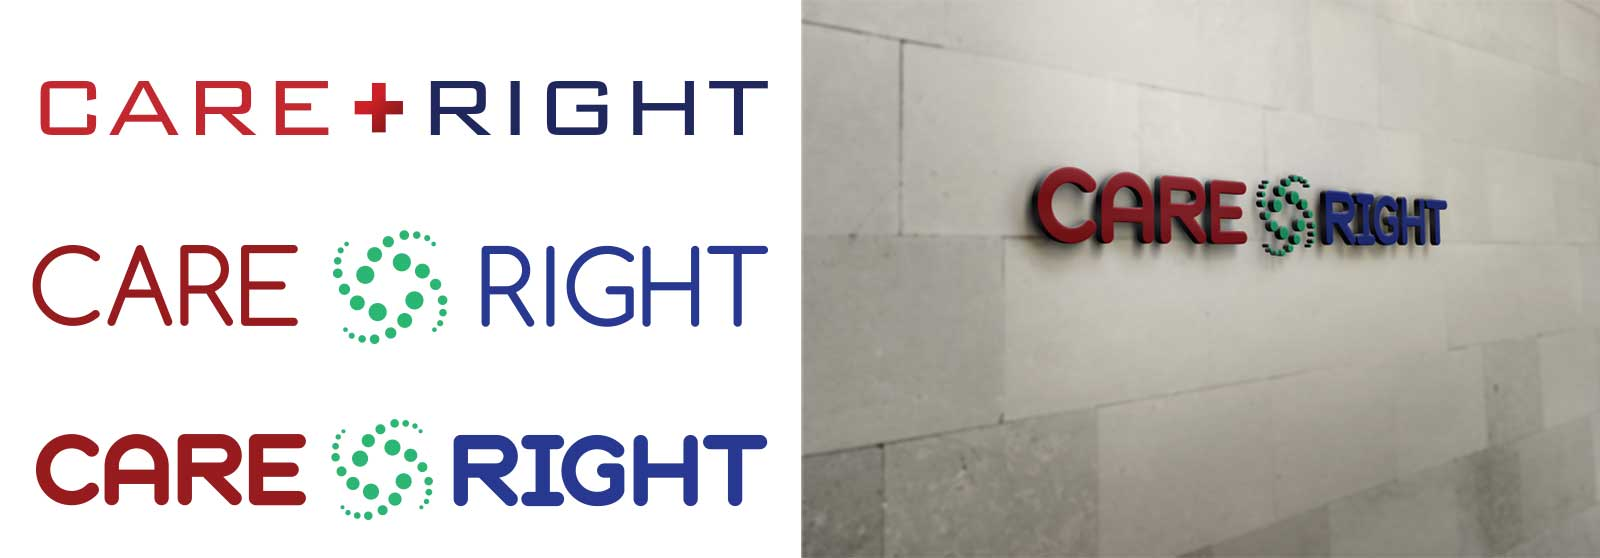 careright_logos